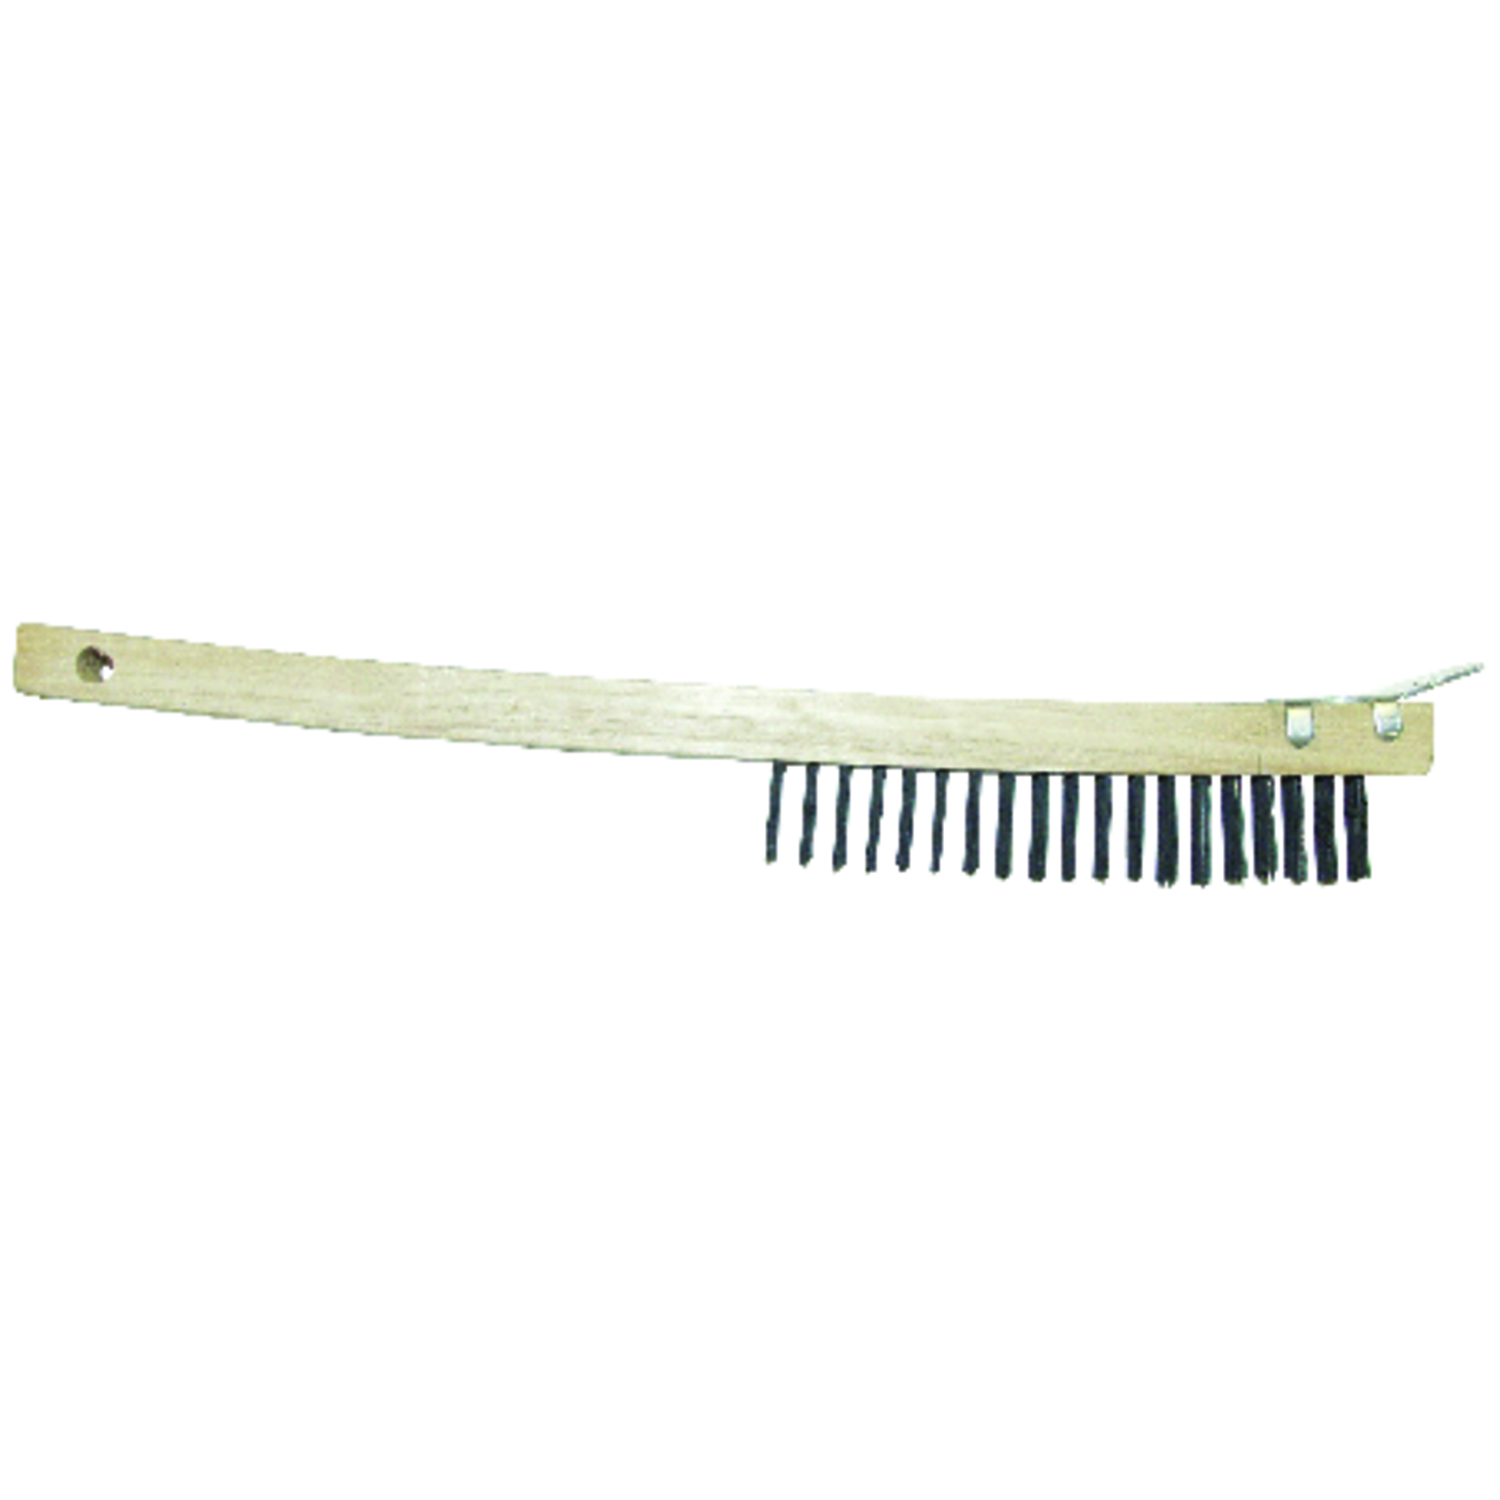 Allway  1 in. W x 1 in. L Carbon Steel  Wire Brush with Scraper